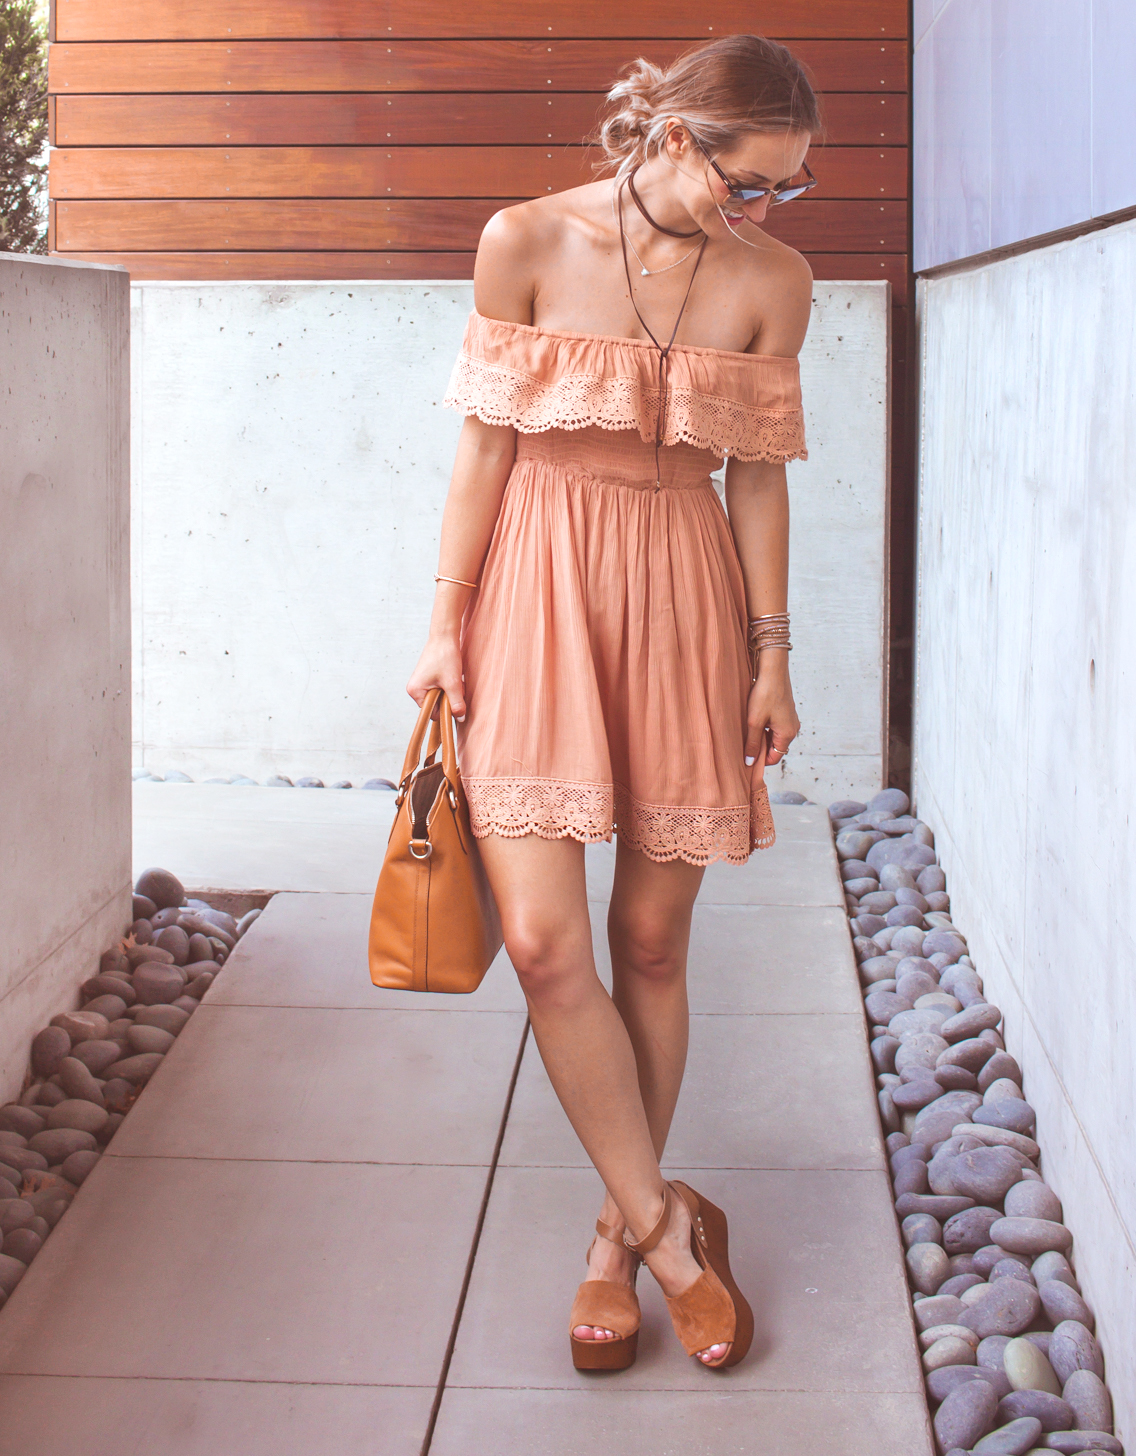 livvyland-blog-olivia-watson-austin-texas-fashion-lifestyle-blogger-peach-coral-lace-off-shoulder-dress-platform-wedges-summer-outfit-6